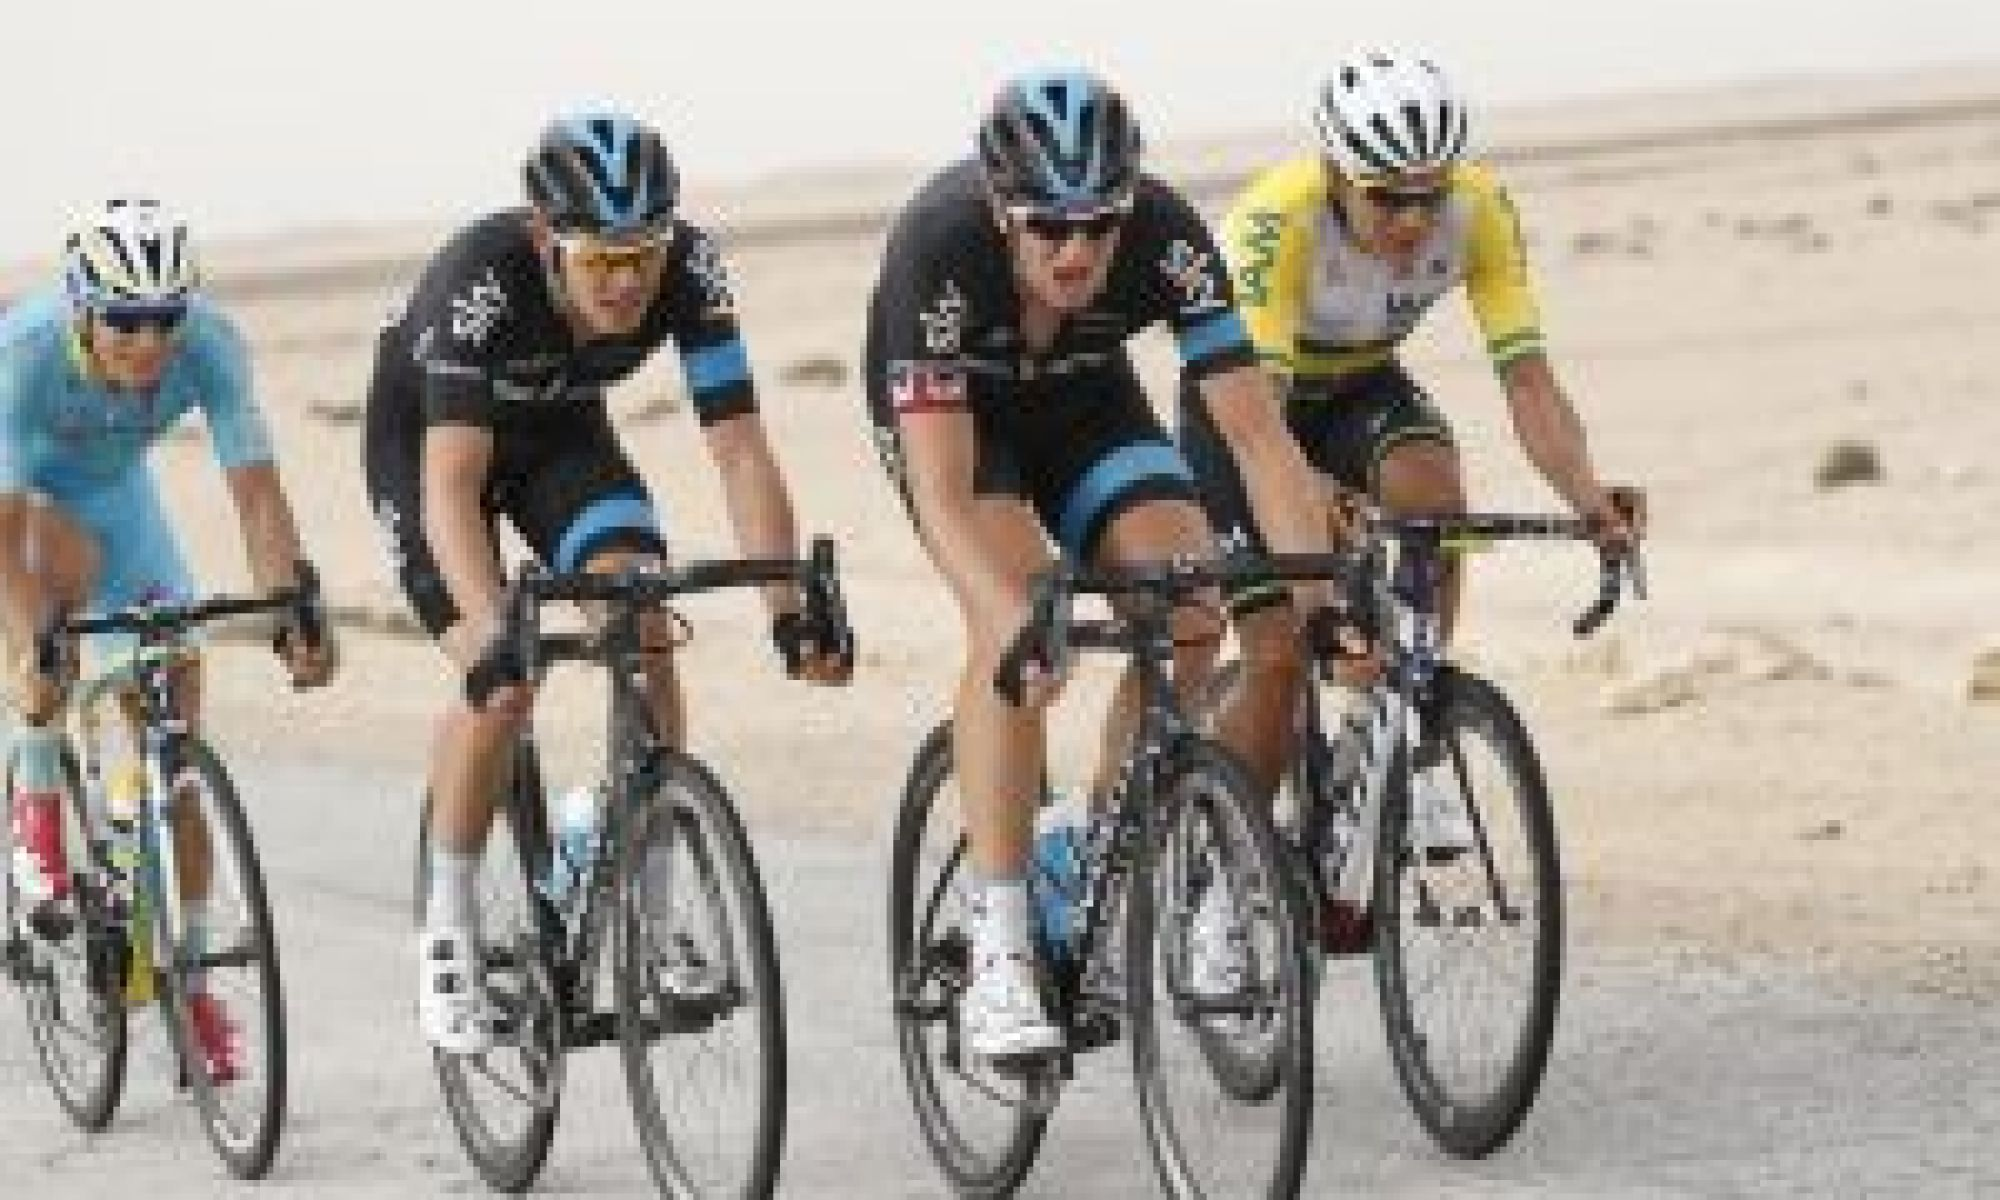 'Going to miss you mate, but what a career': Cycling world reacts as Ian Stannard forced to retire